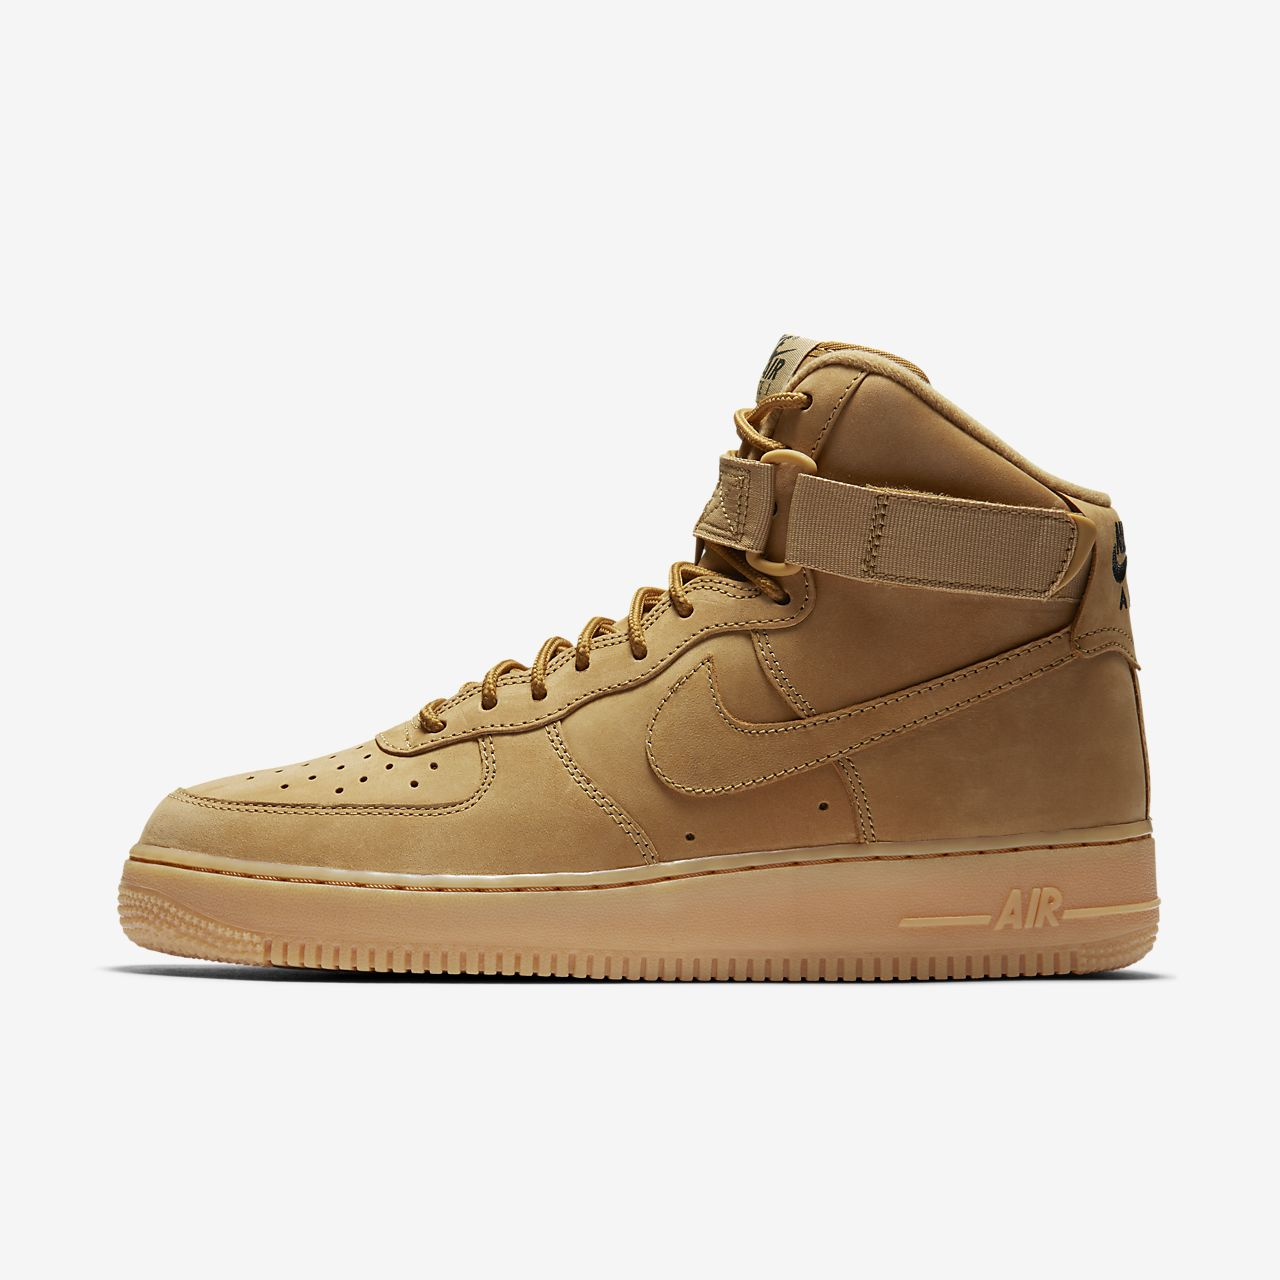 wholesale dealer ea60f c87b7 ... Chaussure Nike Air Force 1 High 07 LV8 WB pour Homme